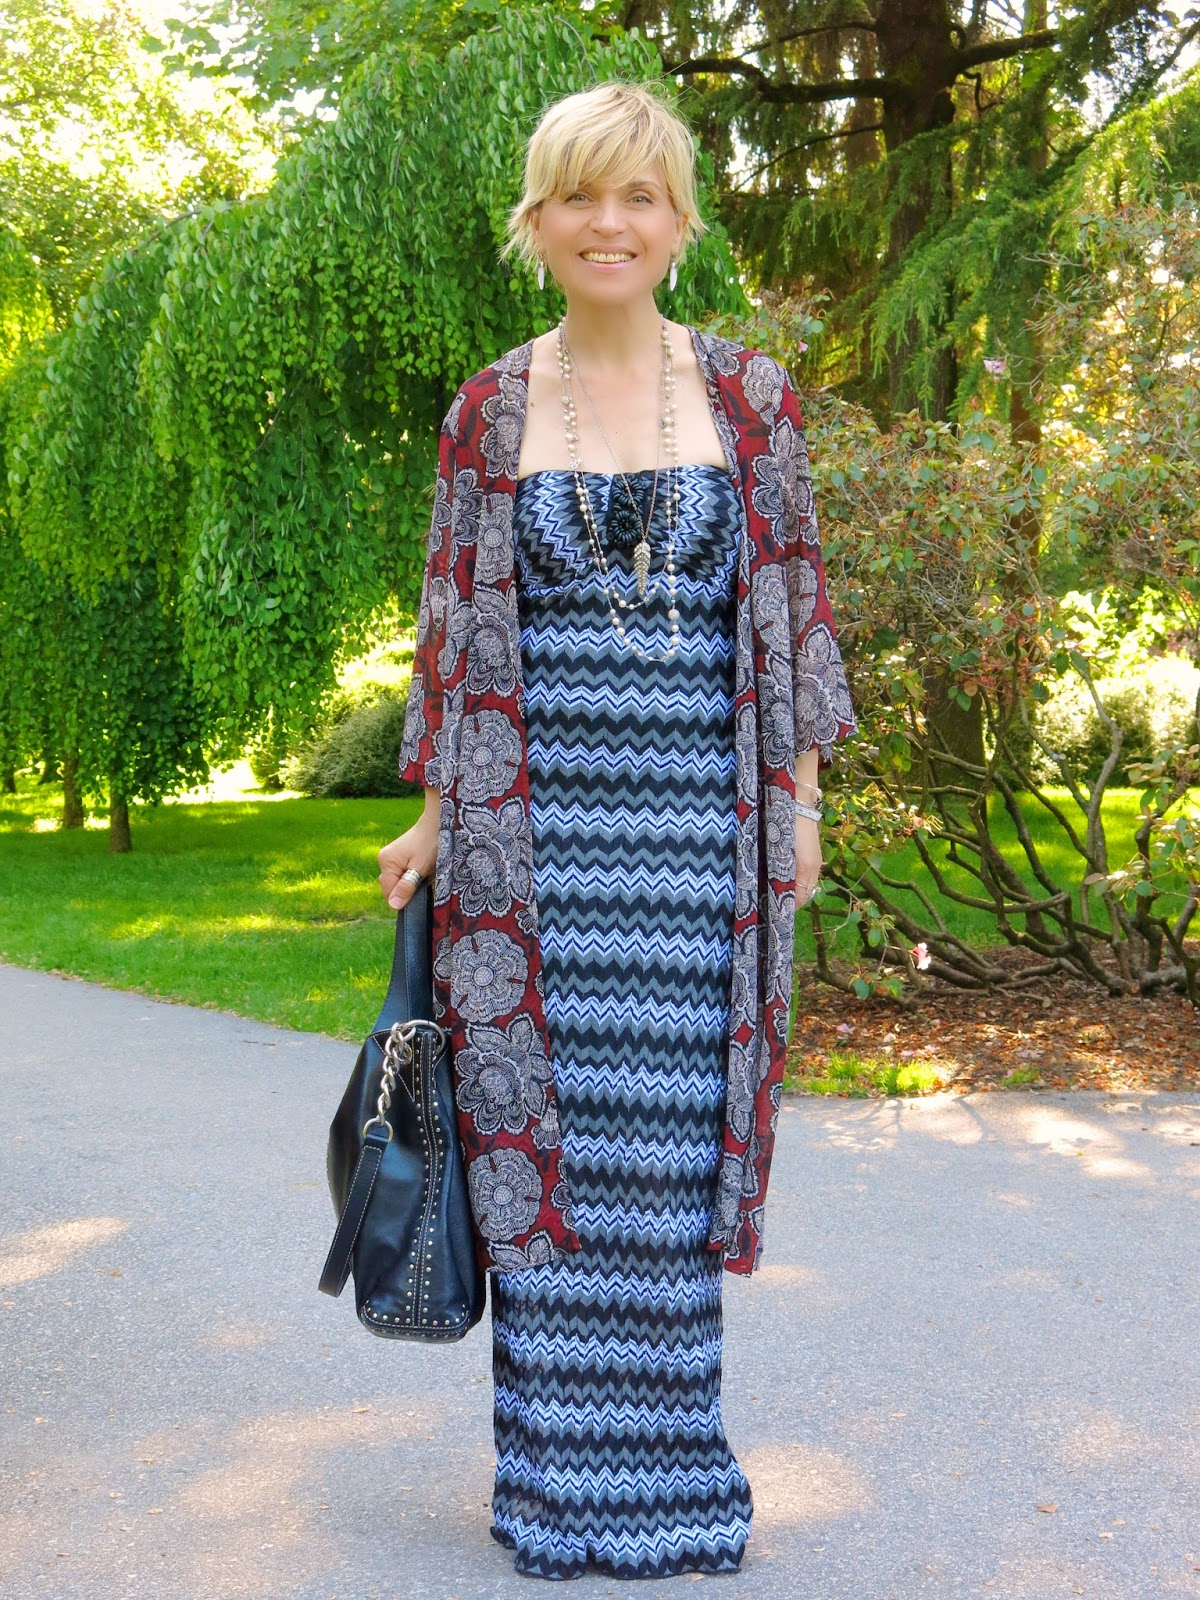 Memory lane:  Striped maxi dress with a floral kimono